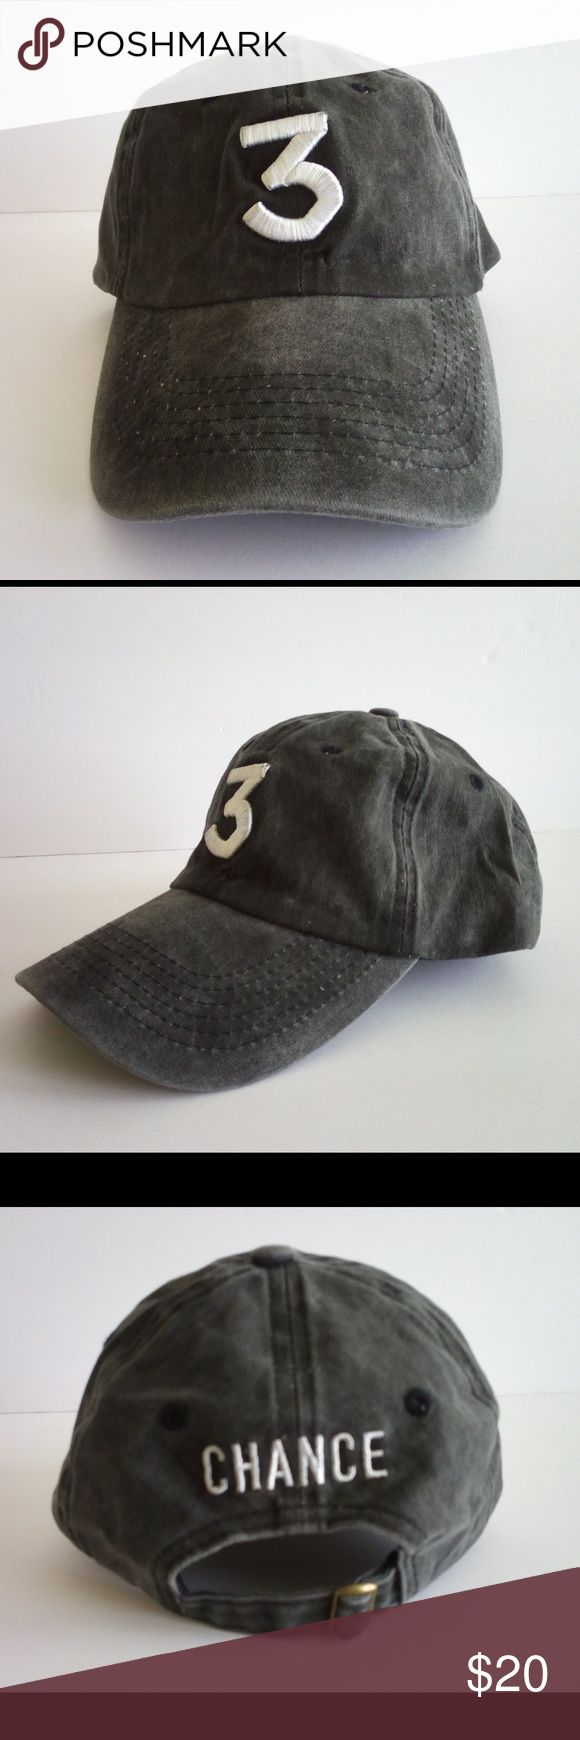 """Chance the Rapper """"3"""" Baseball Hat Brand new ash black colored Chance the Rapper baseball hat. One size fits all, really nice hat! Accessories Hats"""